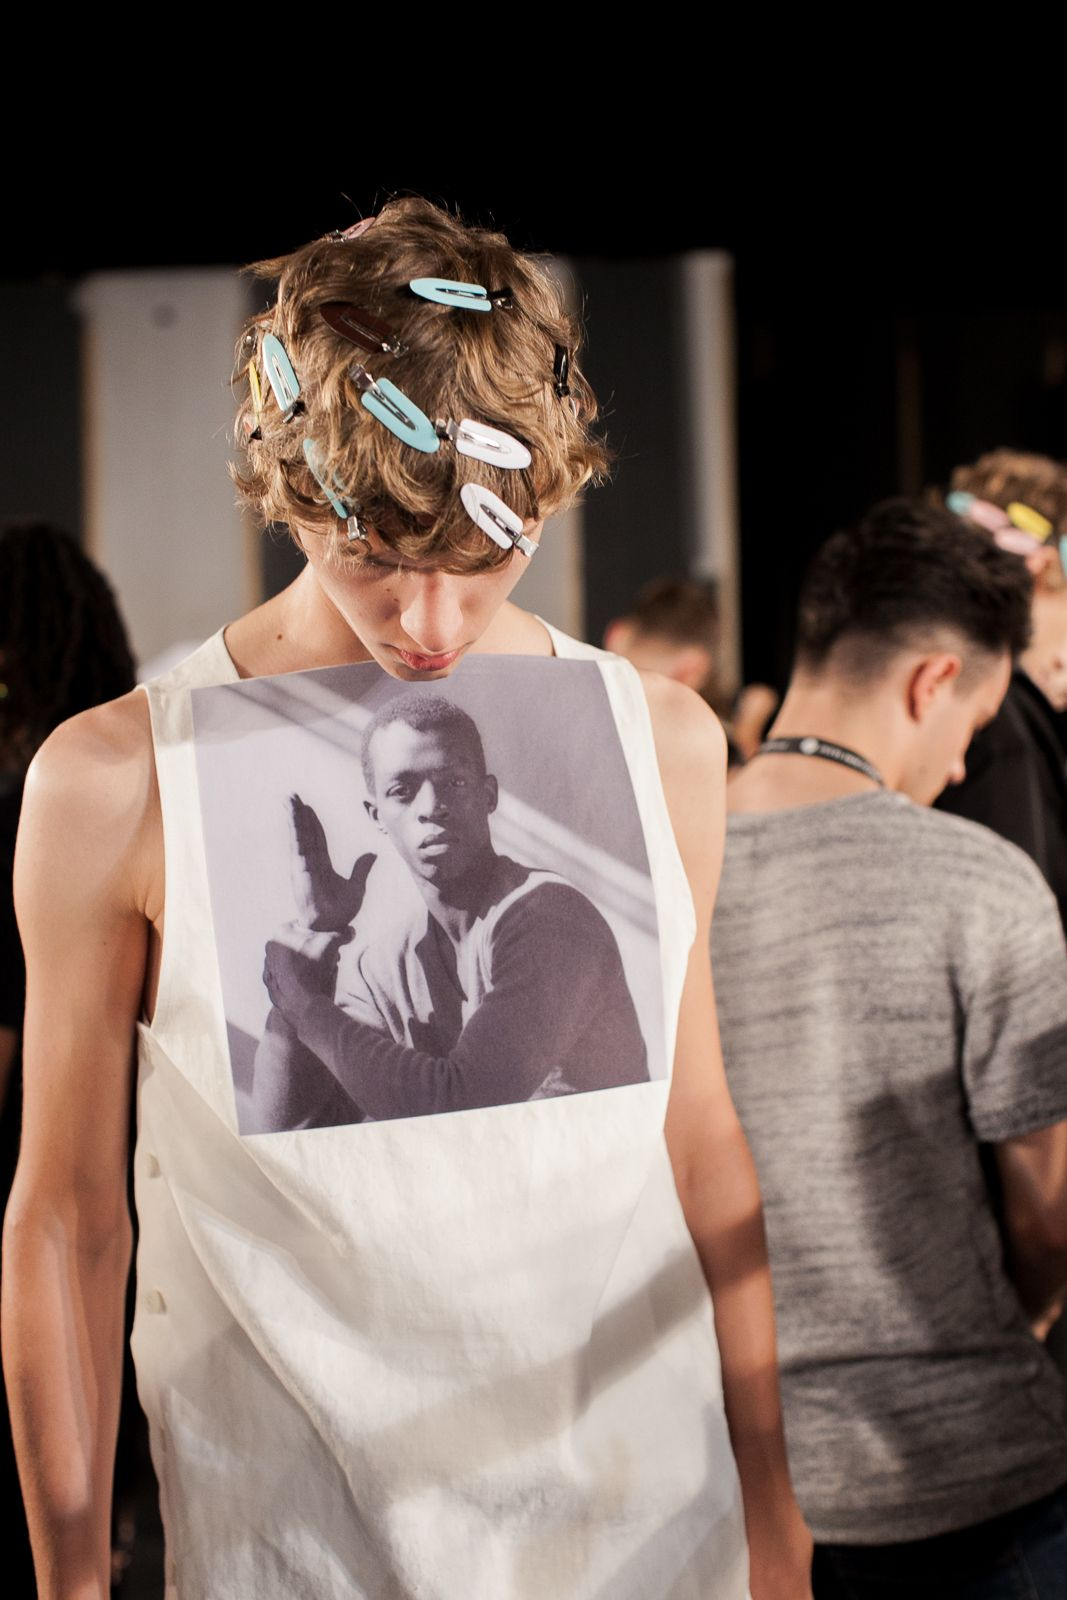 Raf Simons Returns to Pitti Uomo with His Eponymous Men's Wear Collection and Plenty of Male Models - -Wmag